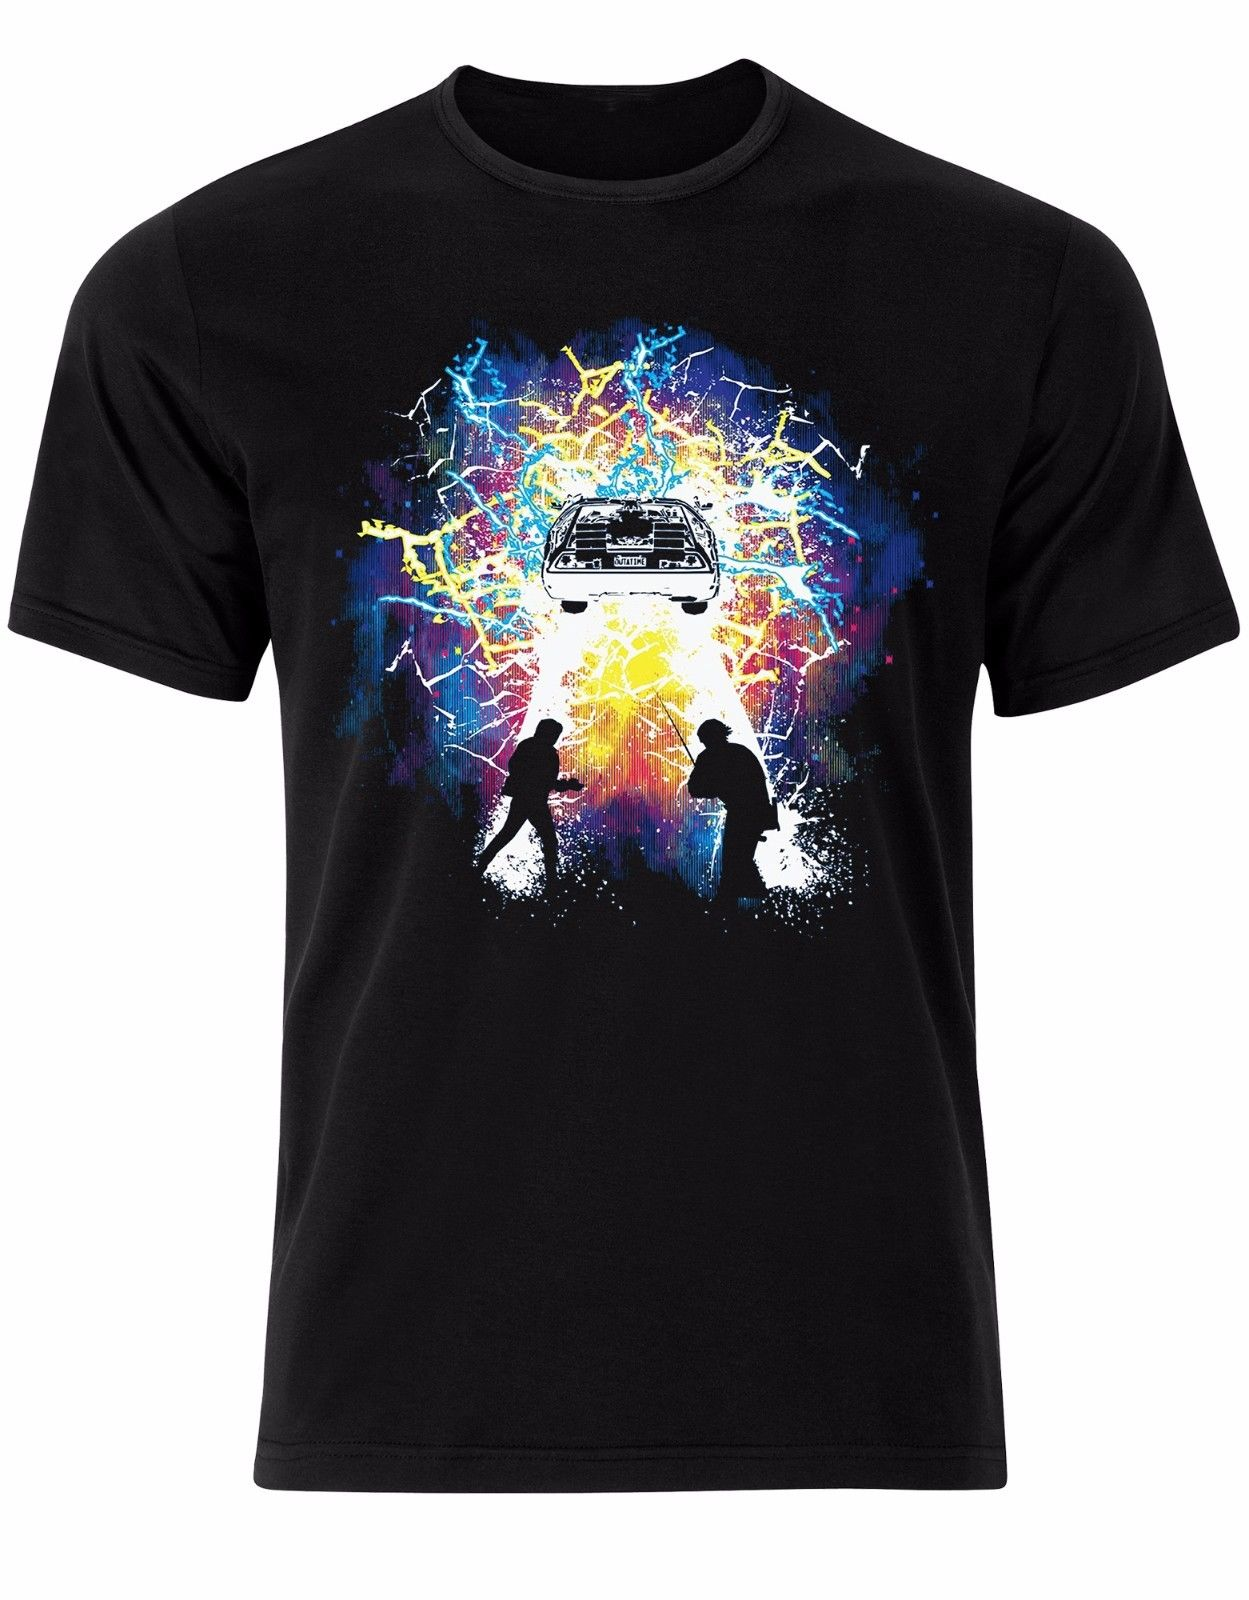 Fashion Summer Tops Colorful Back To The Future Design DeLorean Marty McFly Doc Mens Tshirt Top AL76